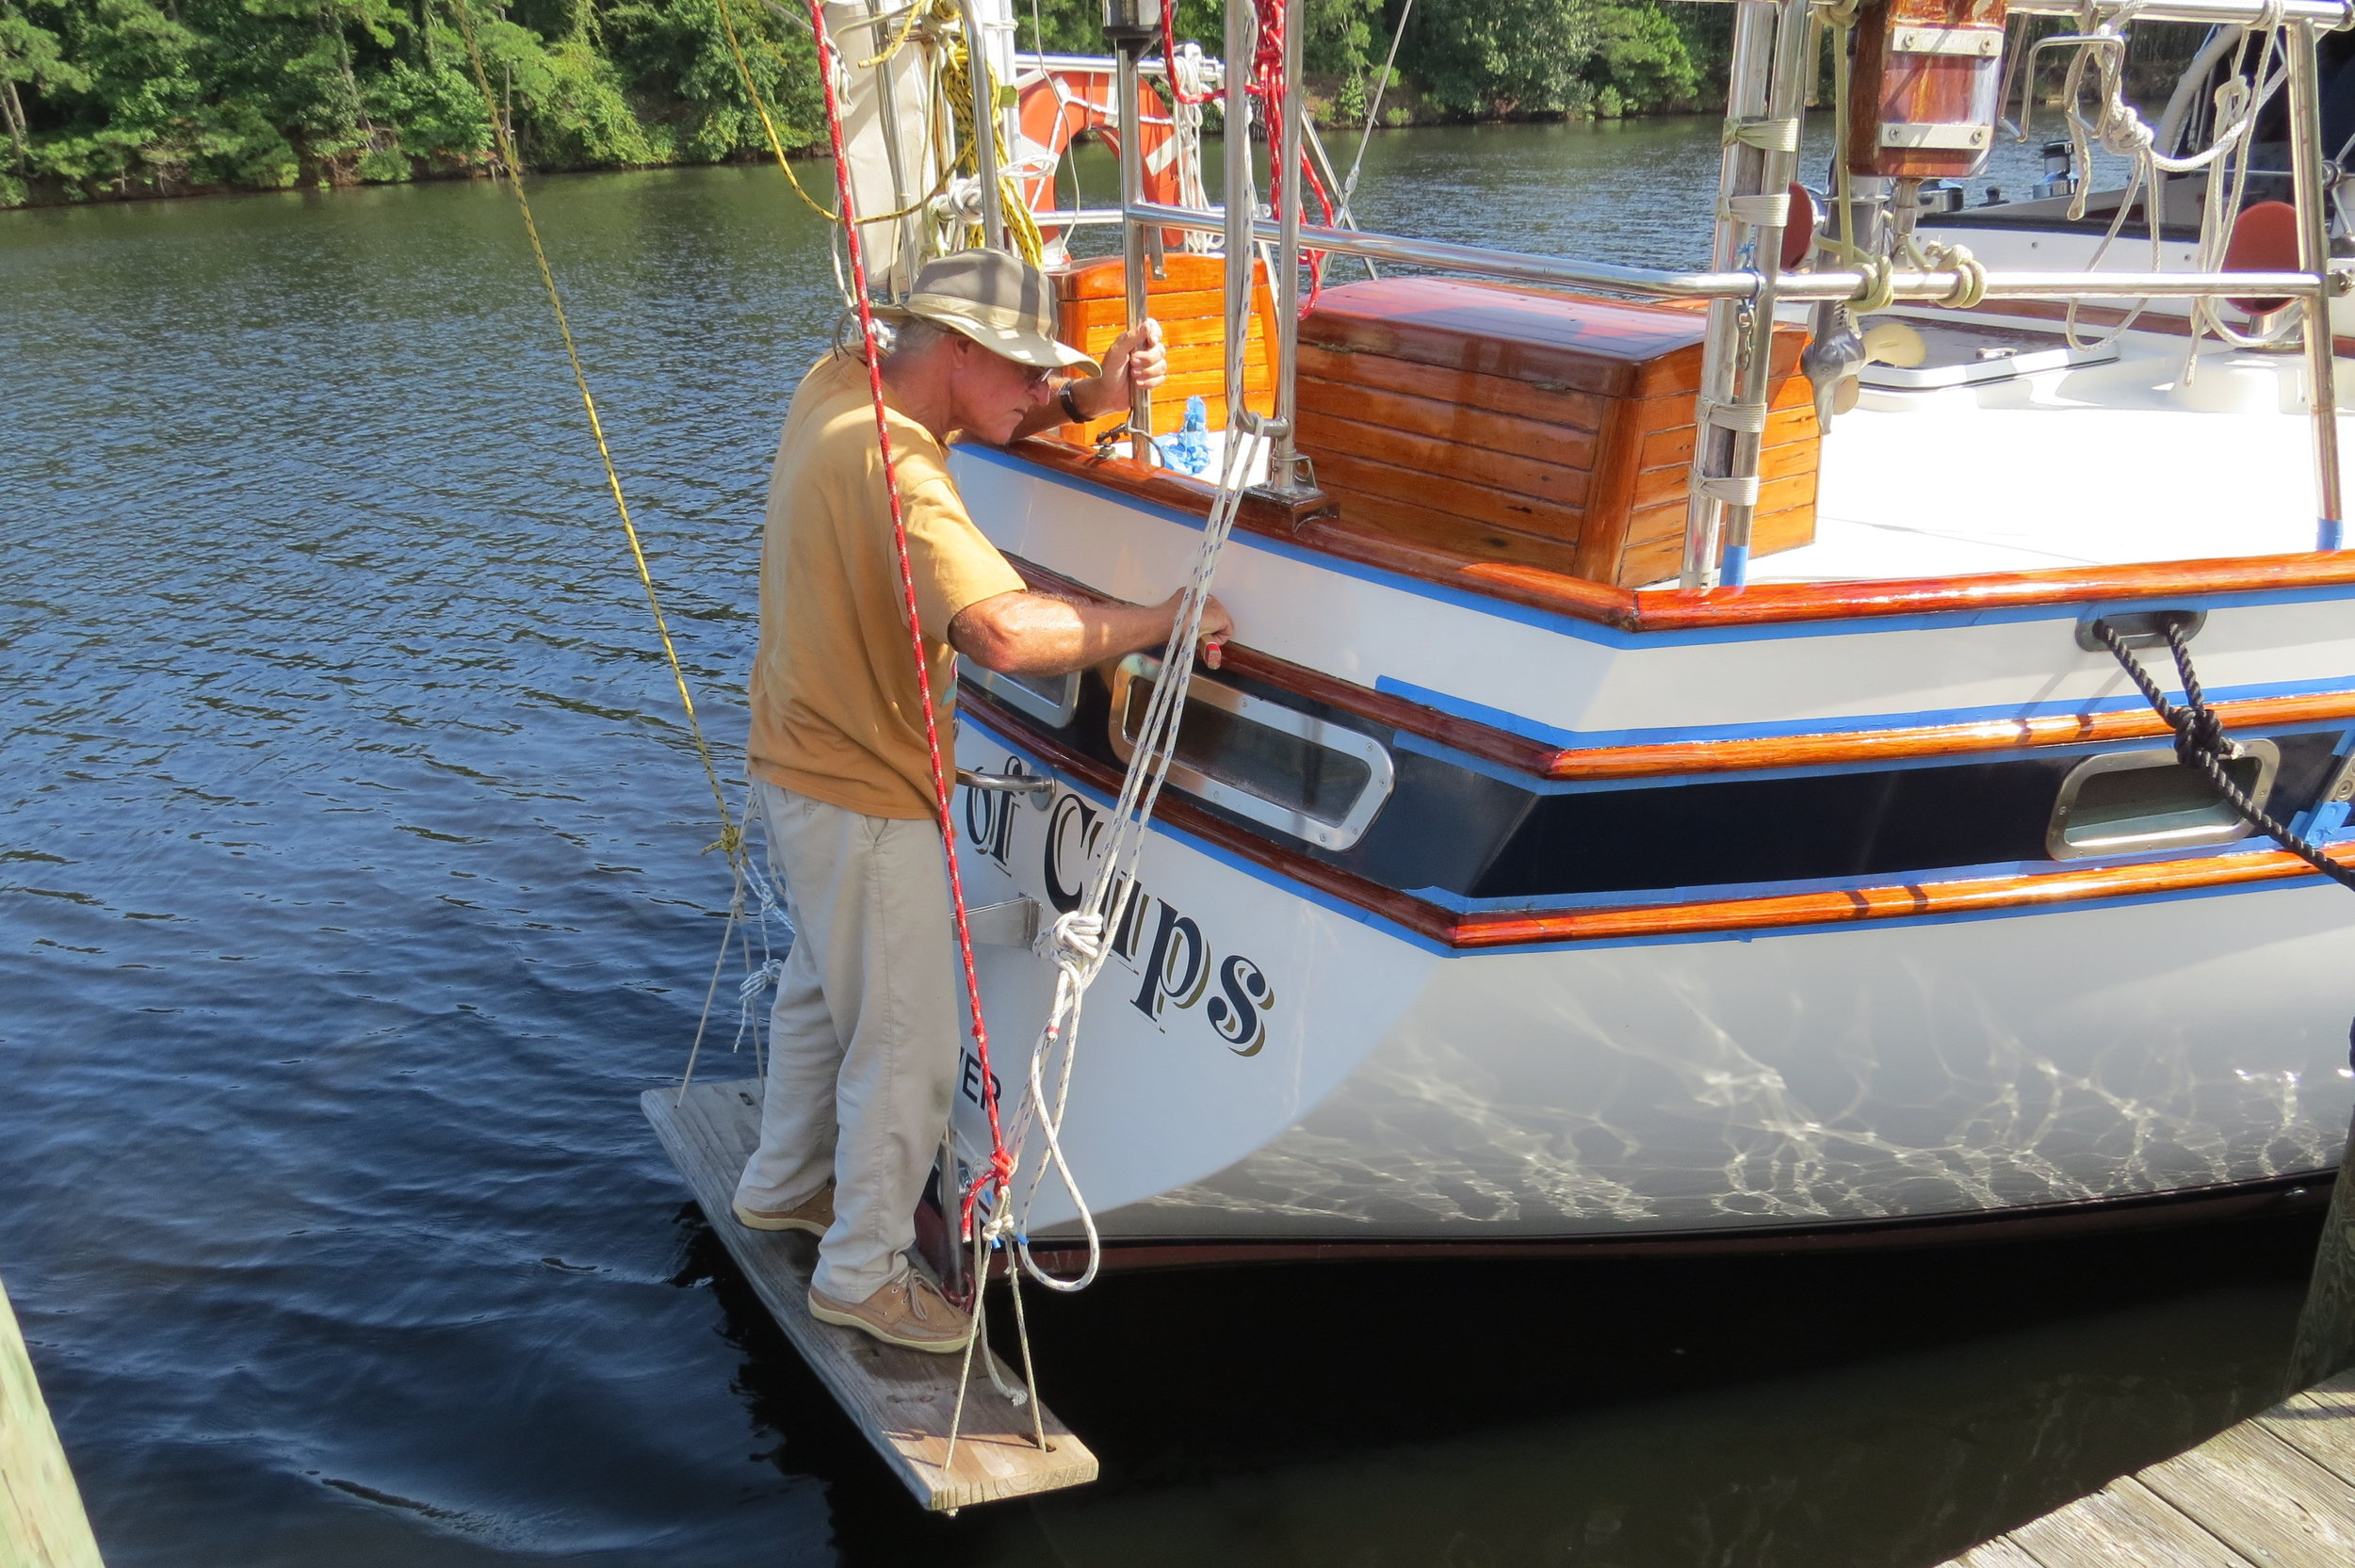 Removing masking tape from newly varnished stern rails